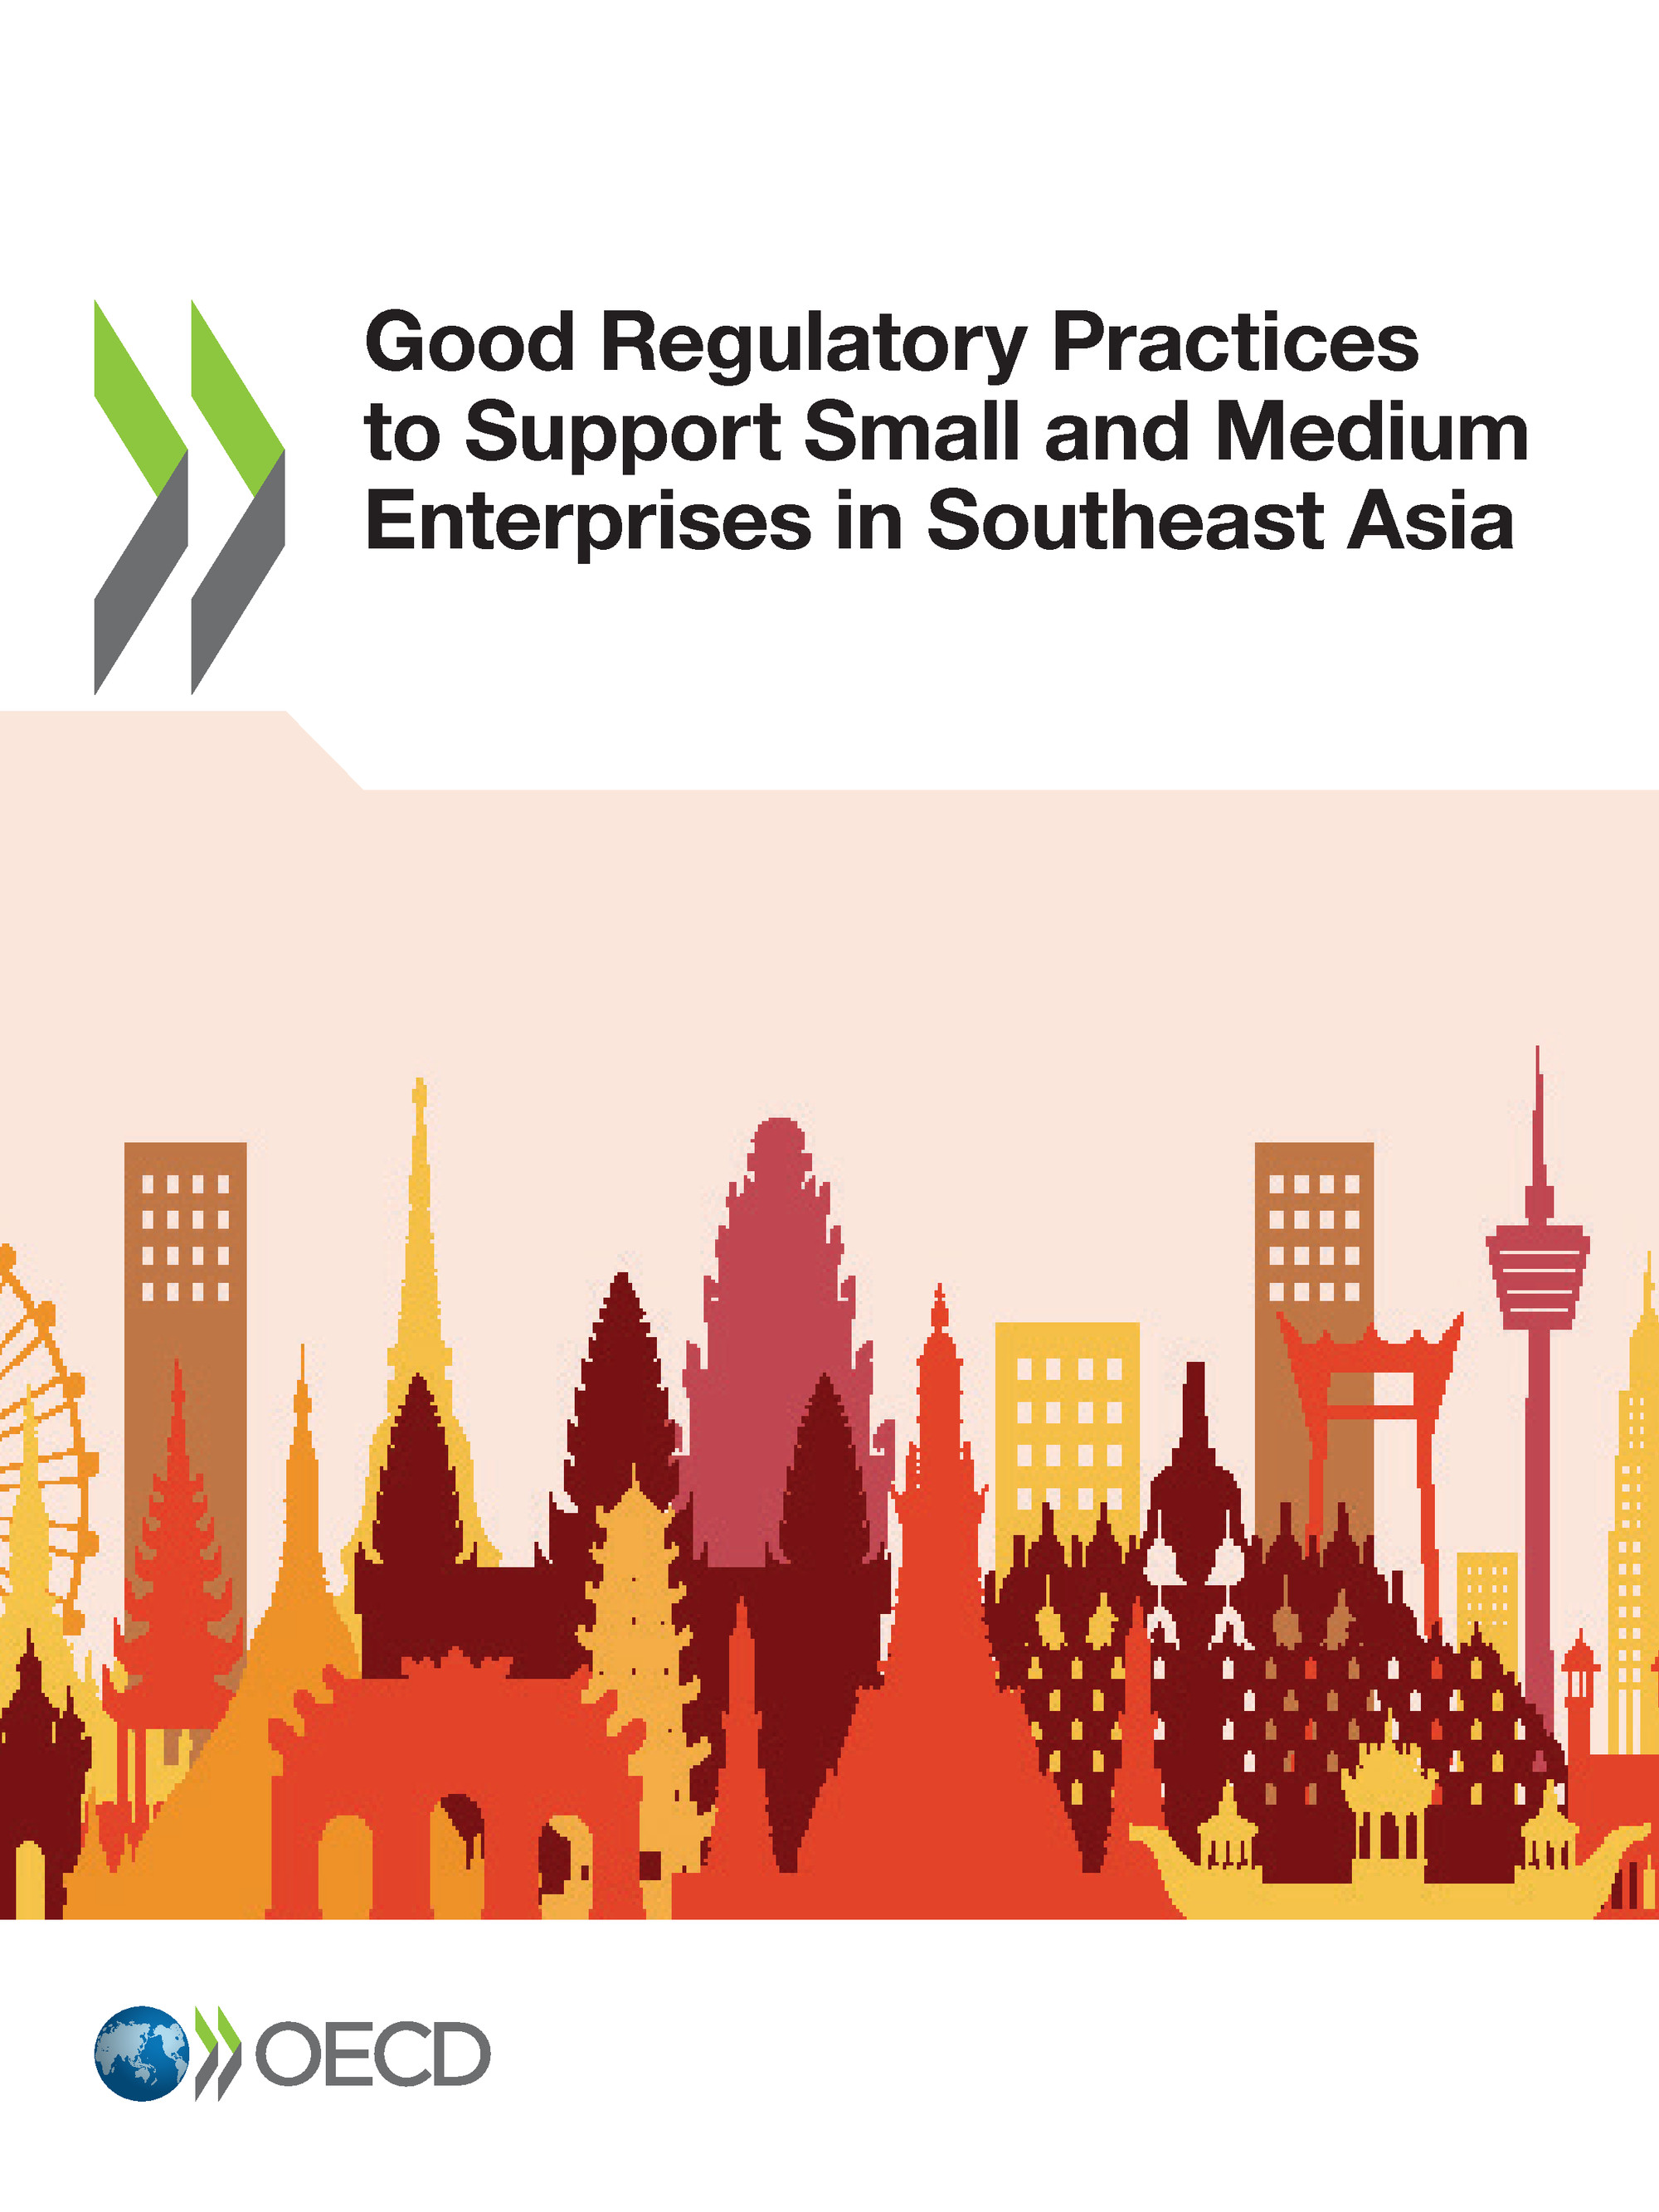 Good Regulatory Practices to Support Small and Medium Enterprises in Southeast Asia De  Collectif - OCDE / OECD